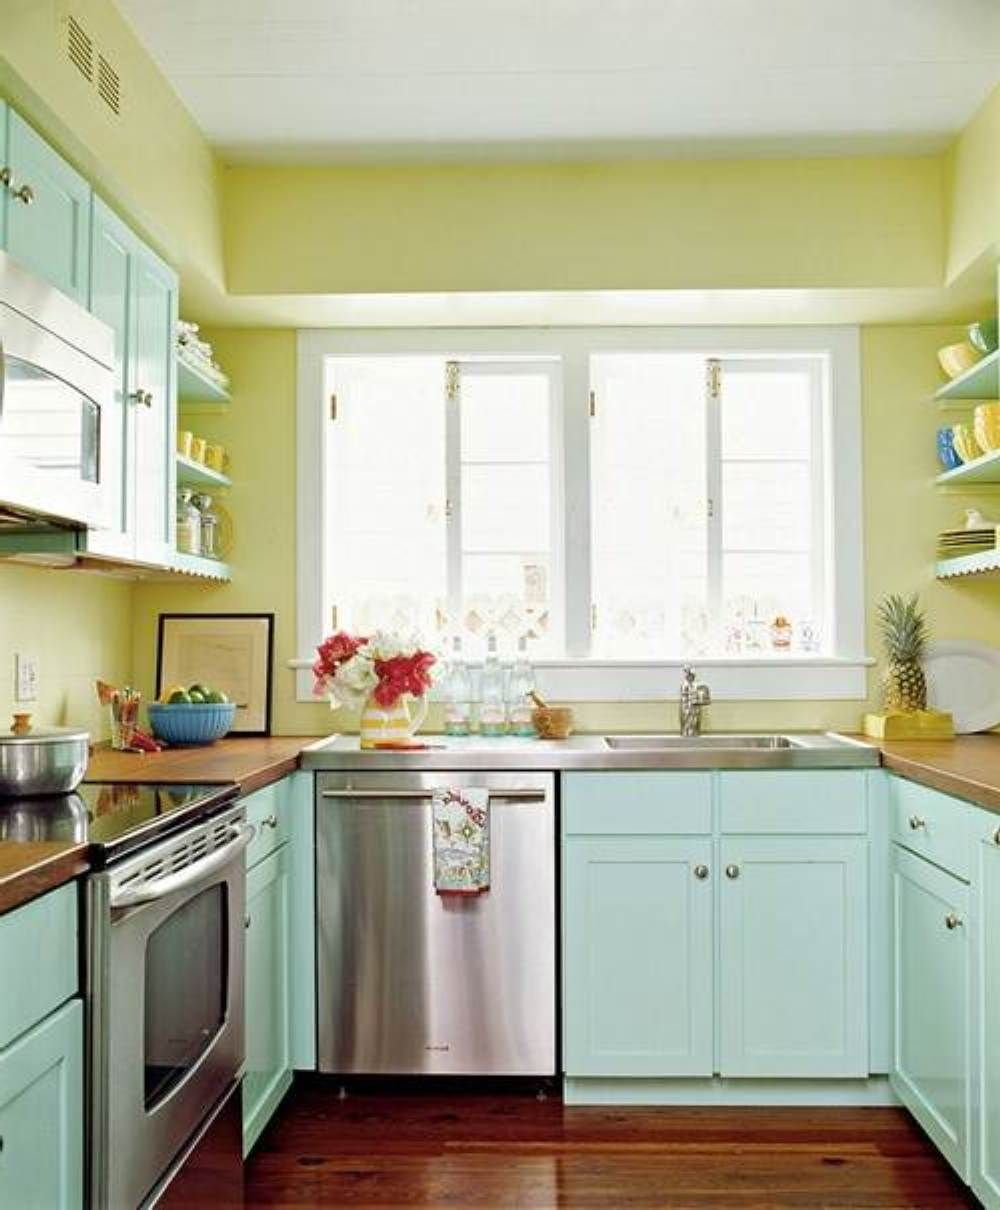 Kitchen Art Nz: Small Kitchen Design Ideas